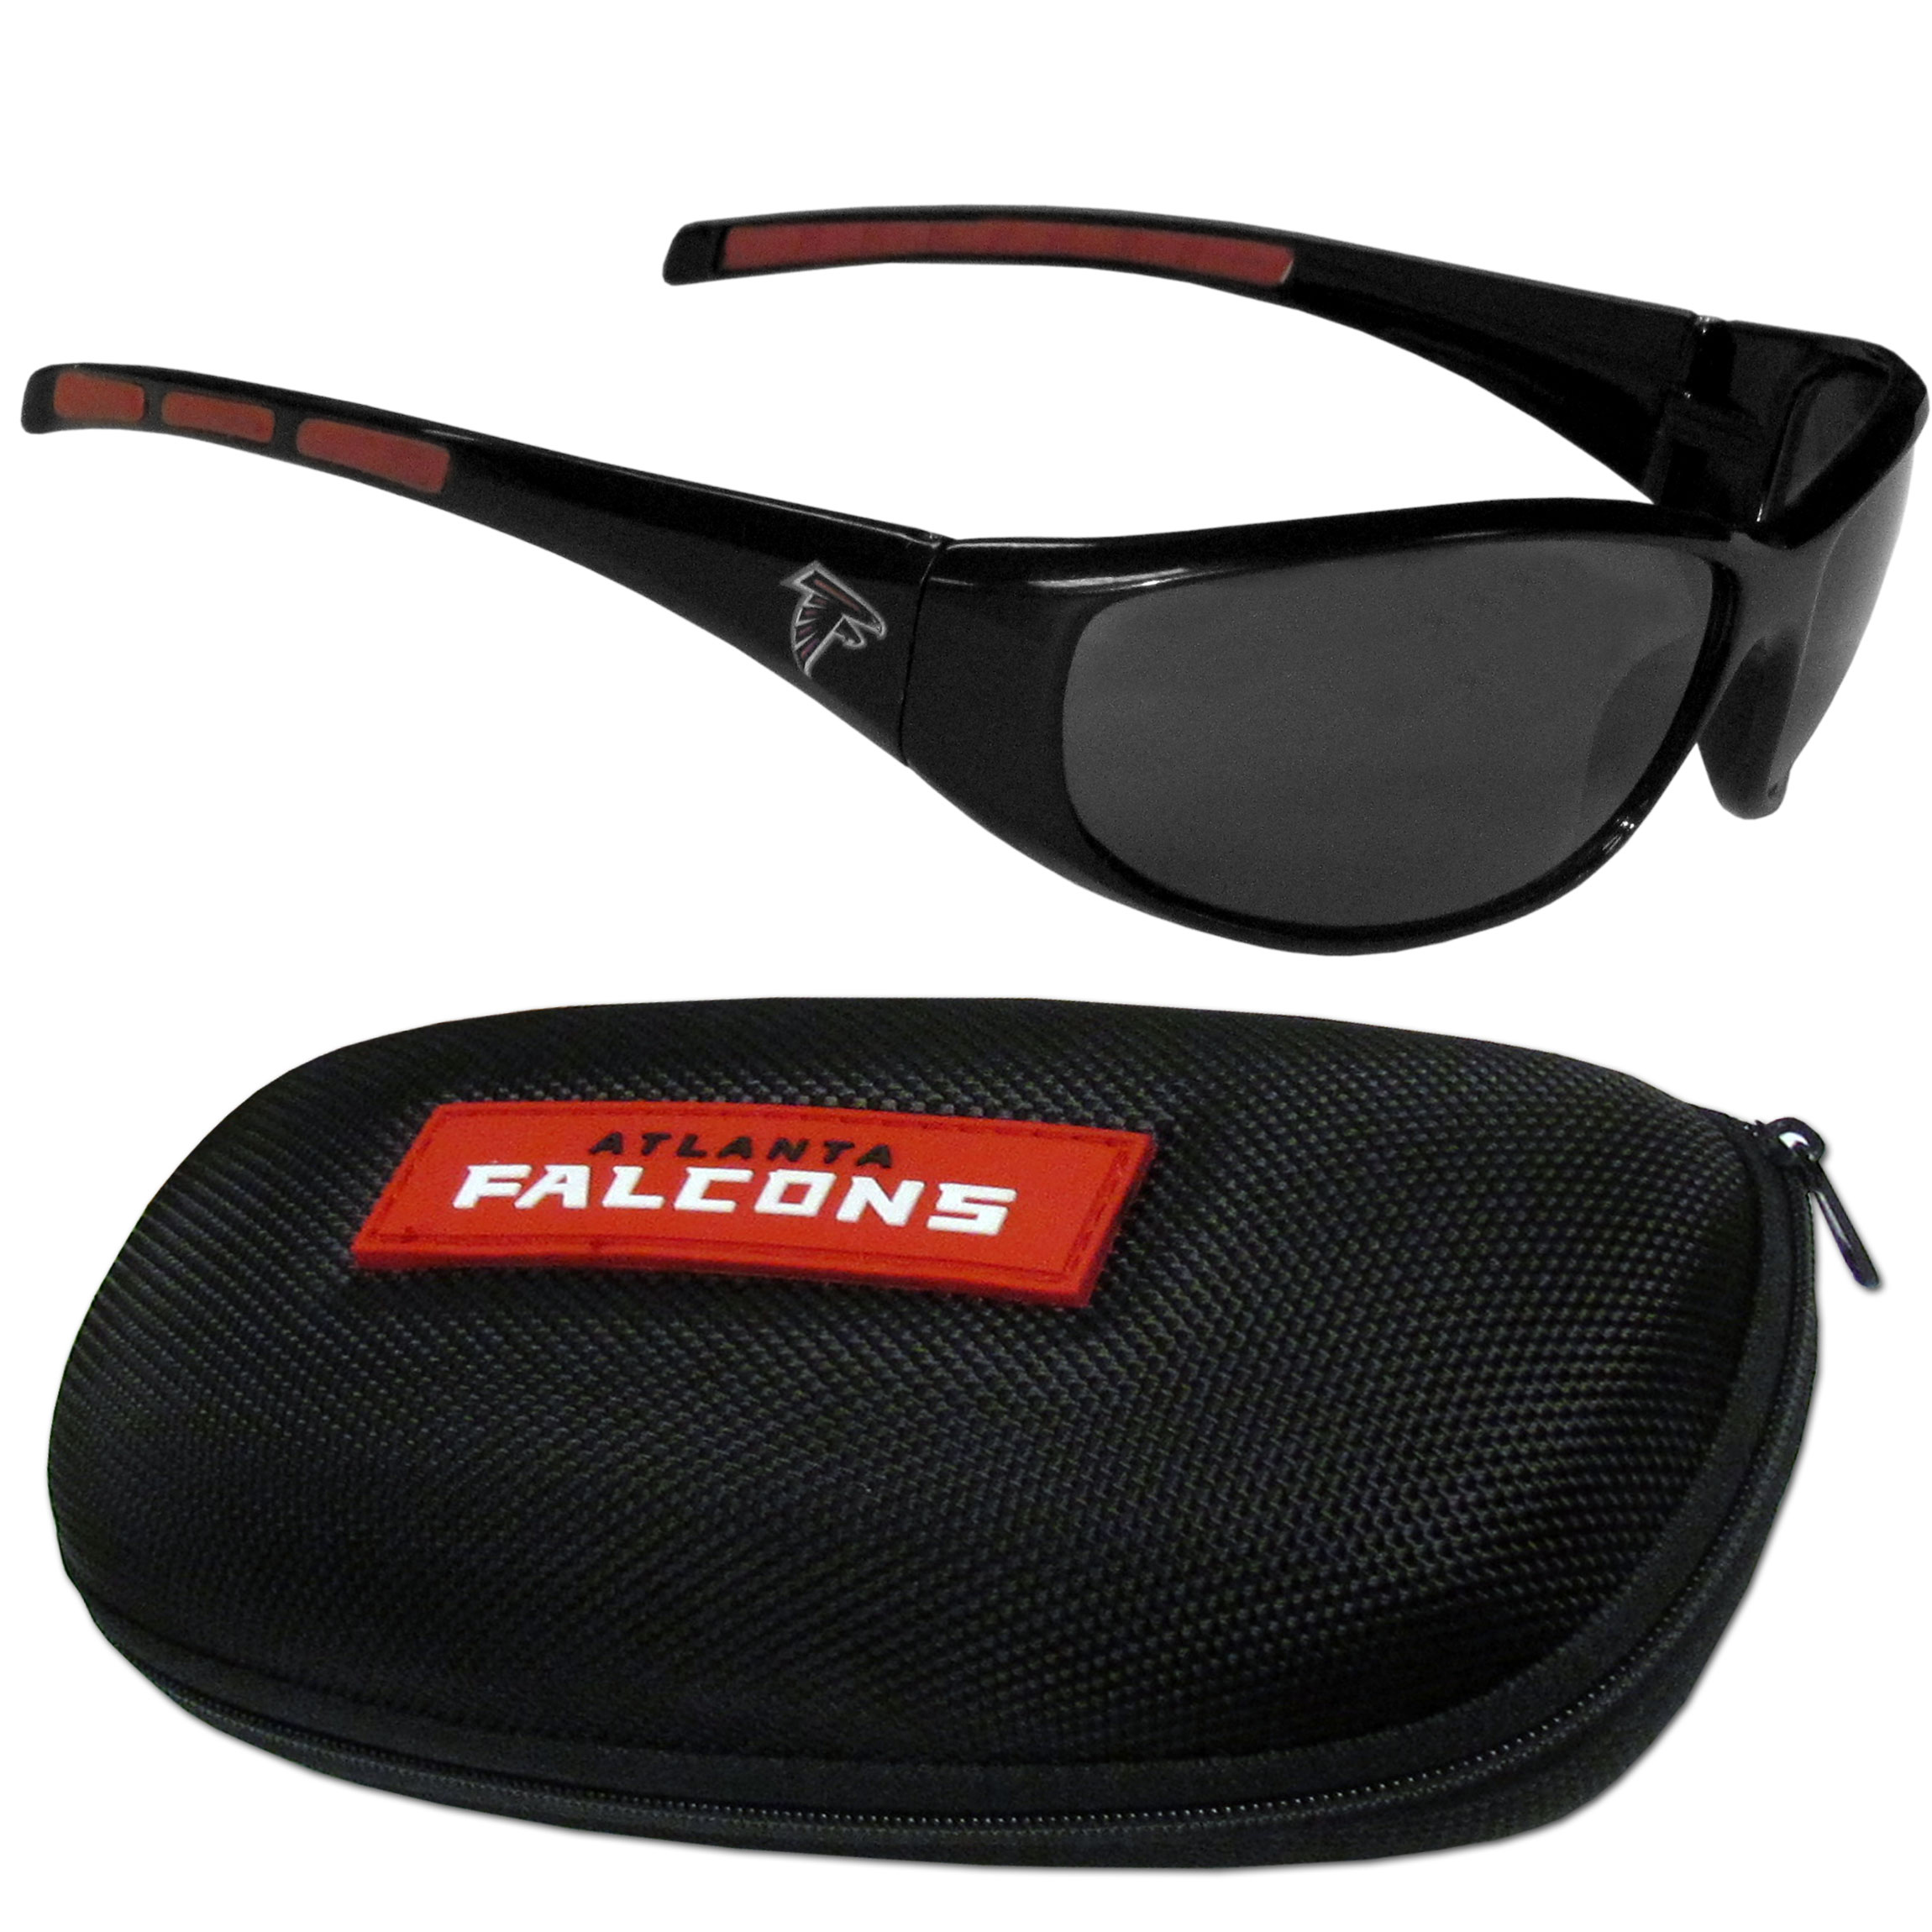 Atlanta Falcons Wrap Sunglass and Case Set - This great set includes a high quality pair of Atlanta Falcons wrap sunglasses and hard carrying case.